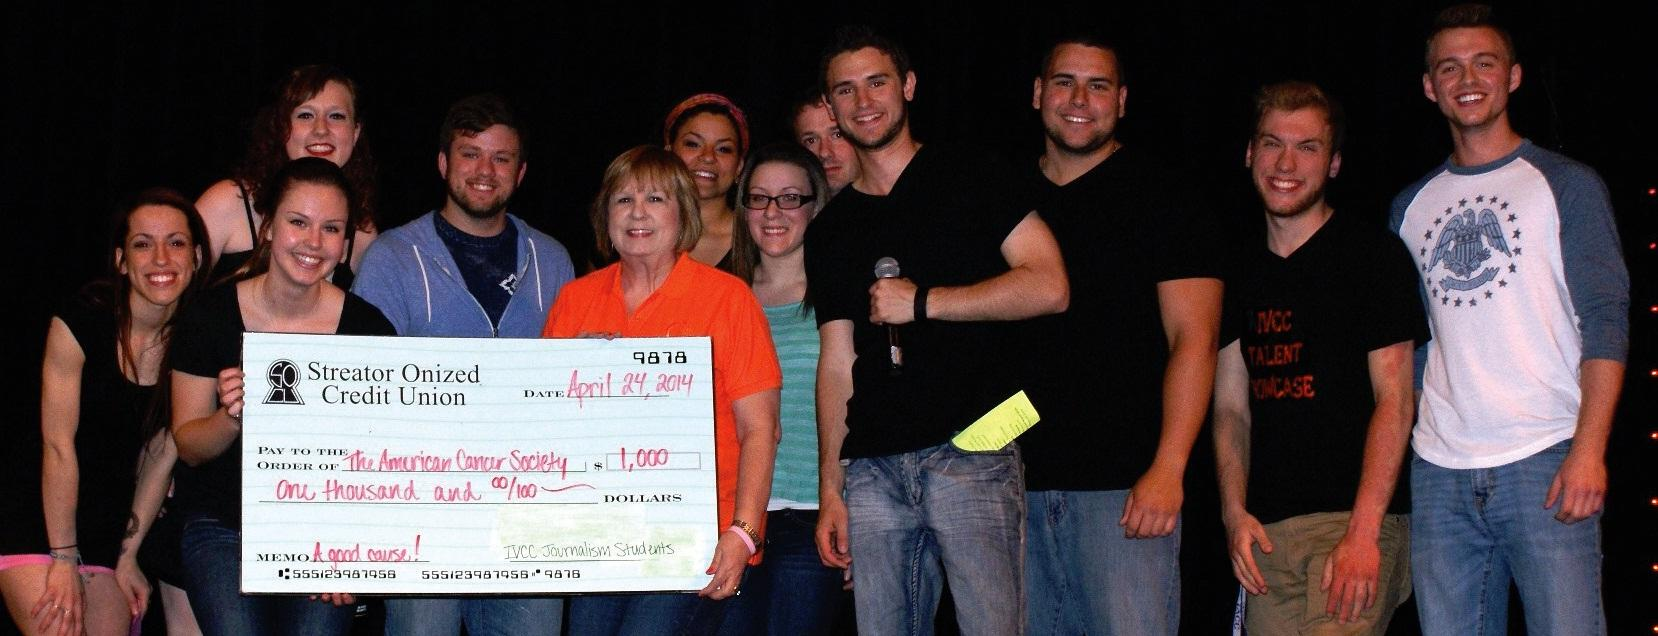 Hailey Shan (back, from left), Christiana Johnson, Brandon Miller; (front) Jade Atkinson, Andrea Neff, Cody Zton, Nancy Jackson, Julianne Cameron, Philip Denner, Alex Danko, Tomasz Augustyniak and Cody Bornemann award the check with the fund raising total at the end of the IV Talent Showcase on April 24. The Journalism 1002 class raised more than $1,000 for the American Cancer Society and presented the check to Jackson from the Relay for Life, American Cancer Society.